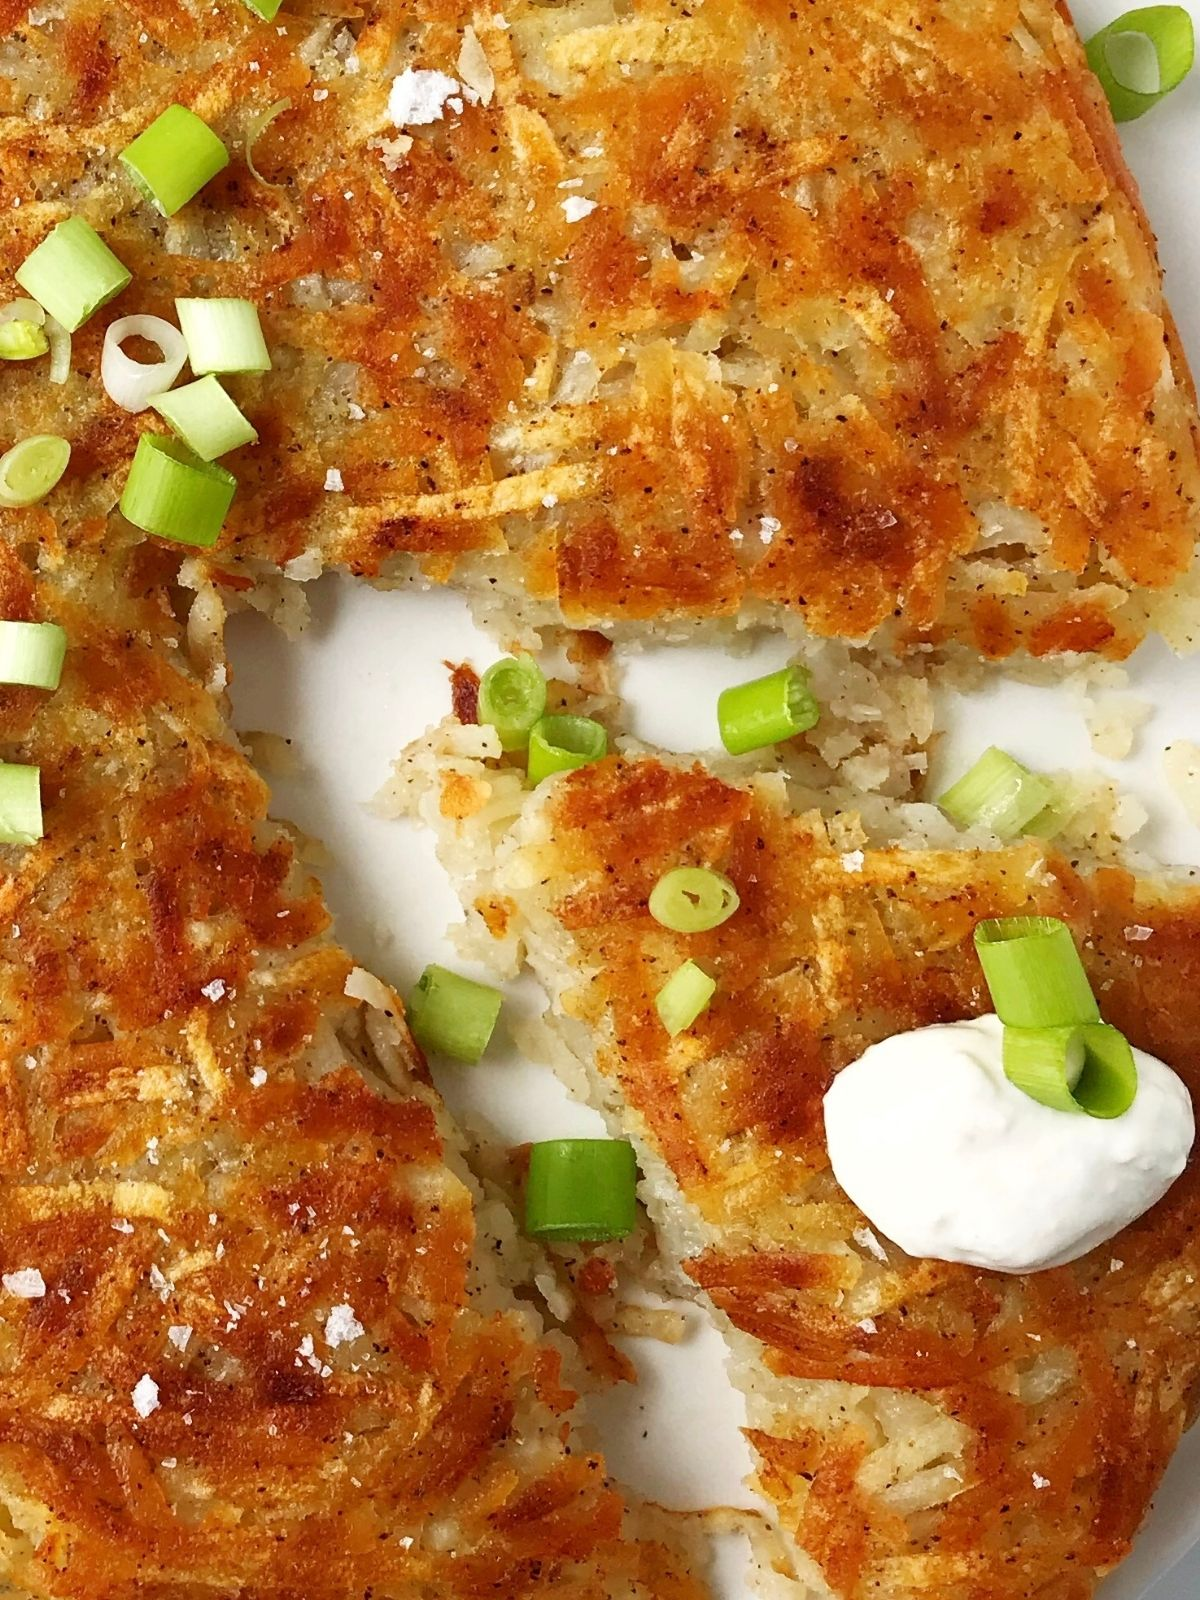 close up of a slice of hash brown